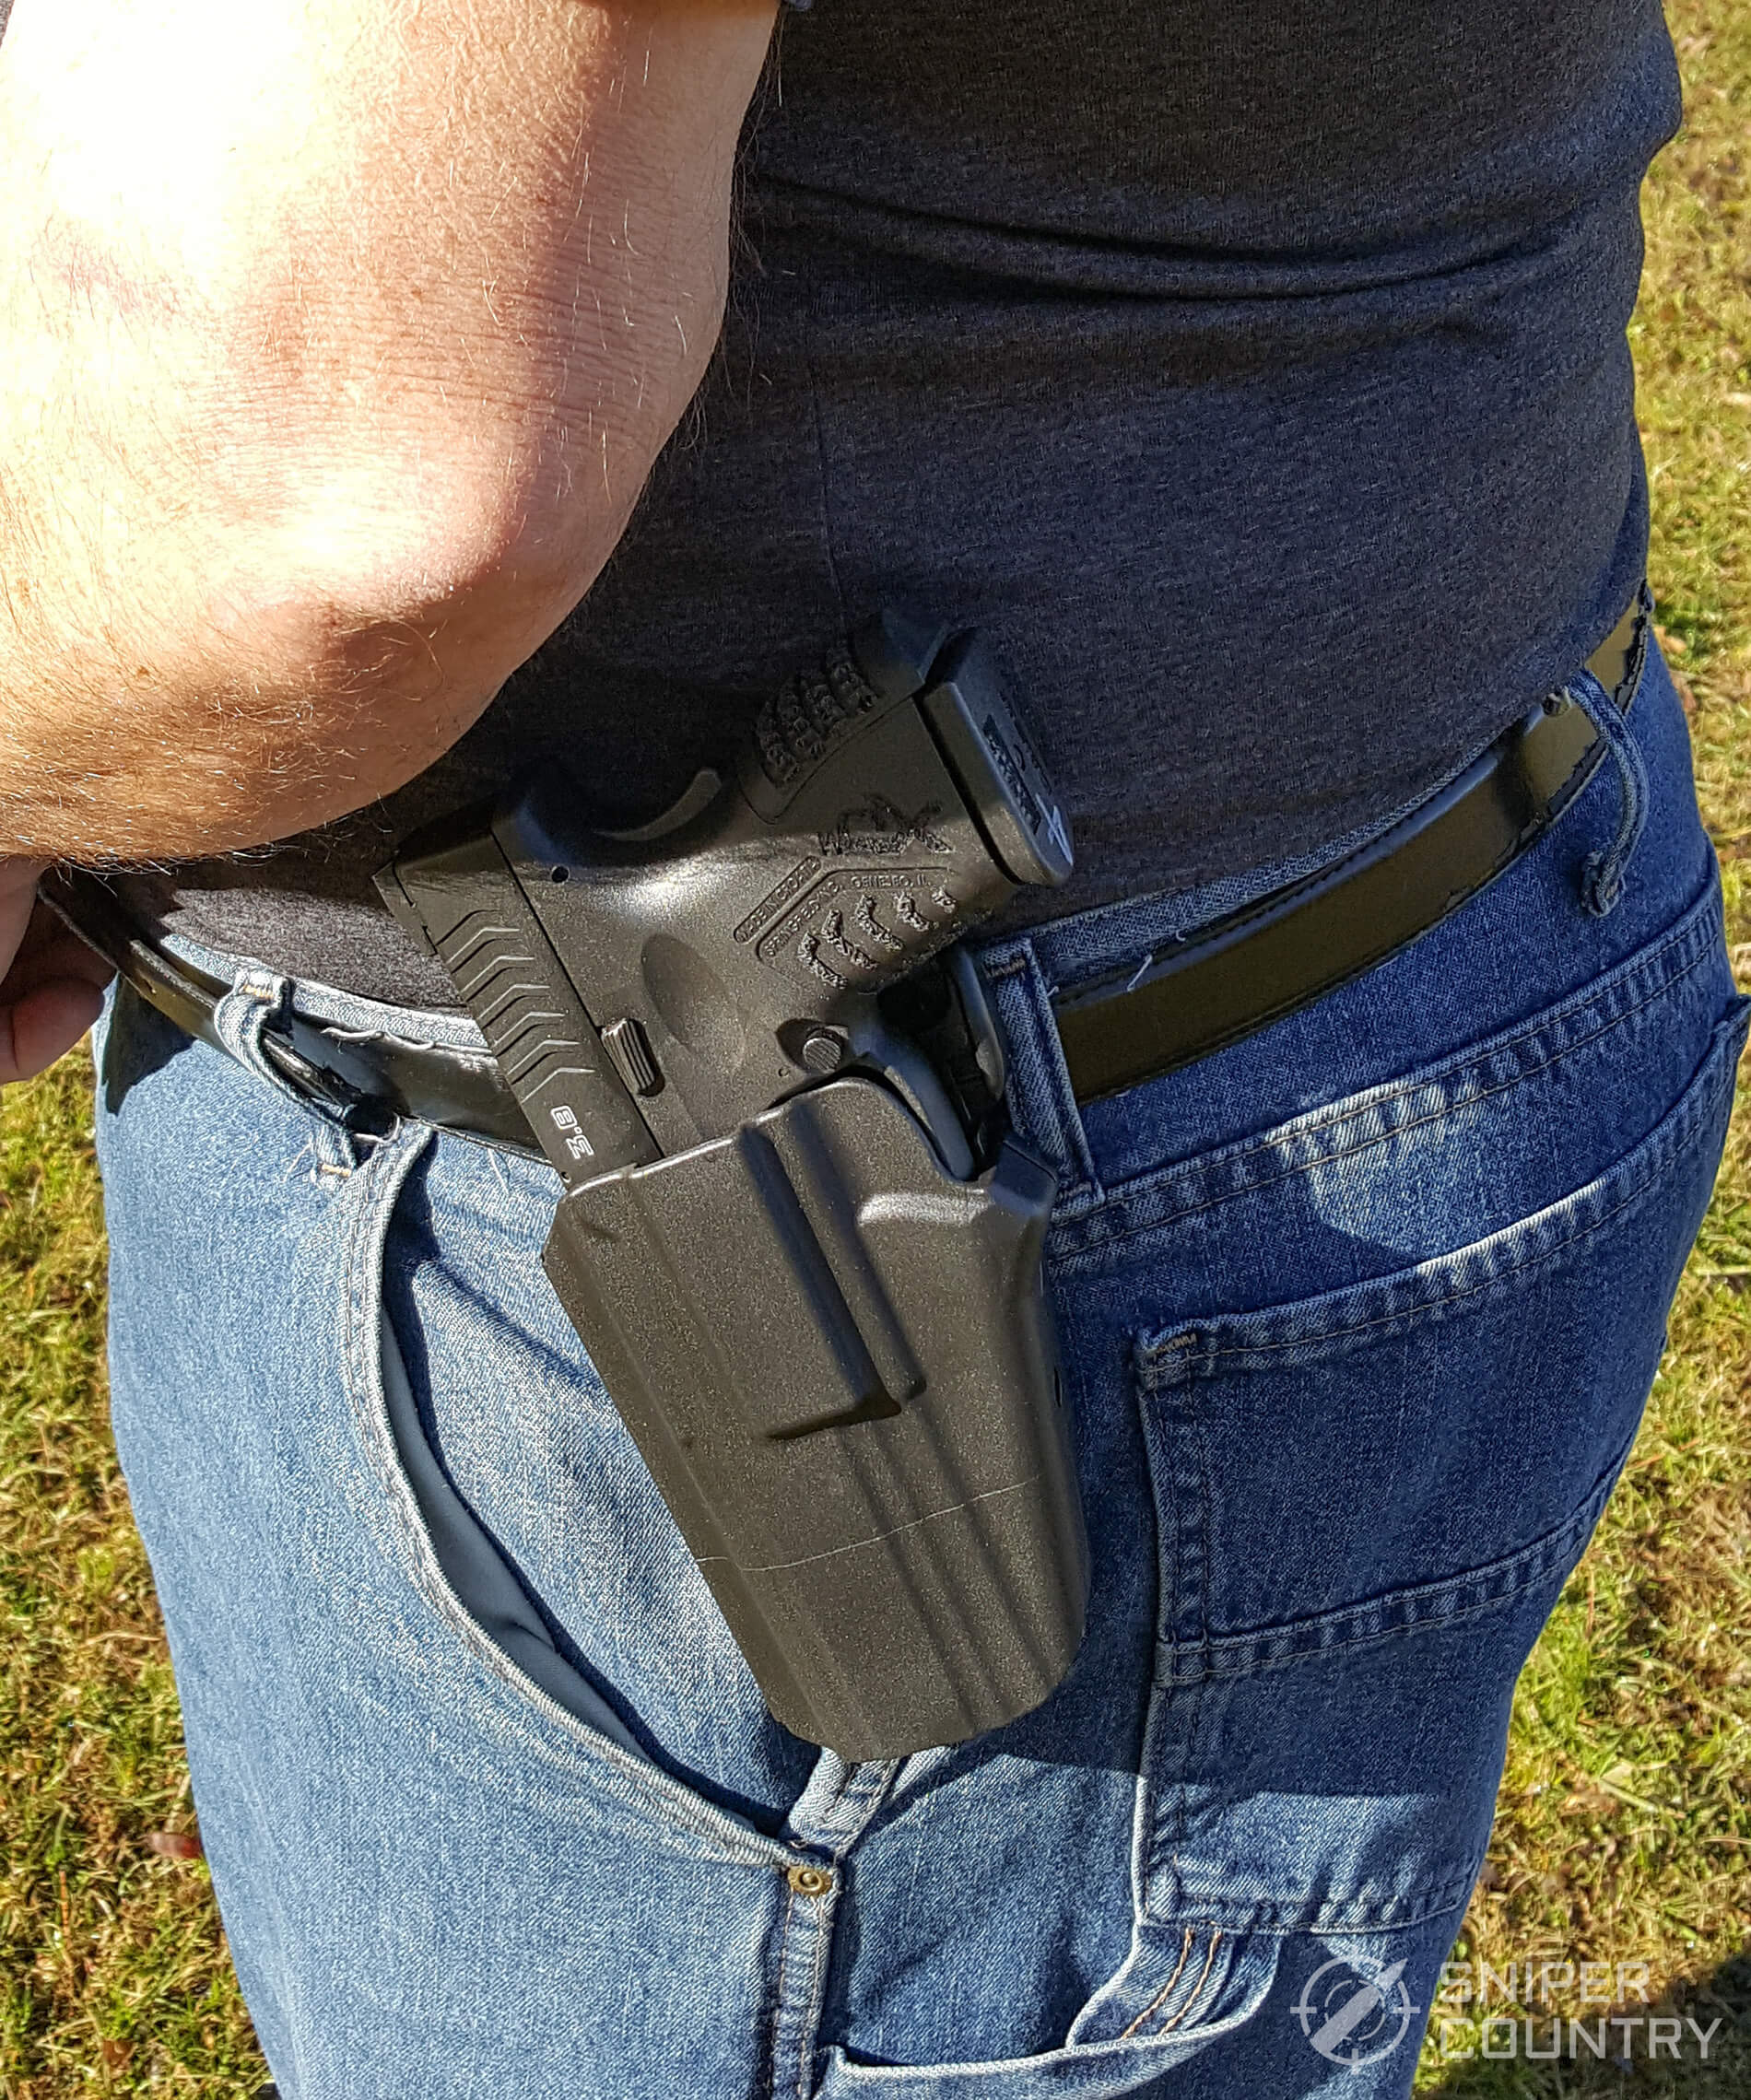 Safariland 578 GLS Pro-Fit Holster gun on hip